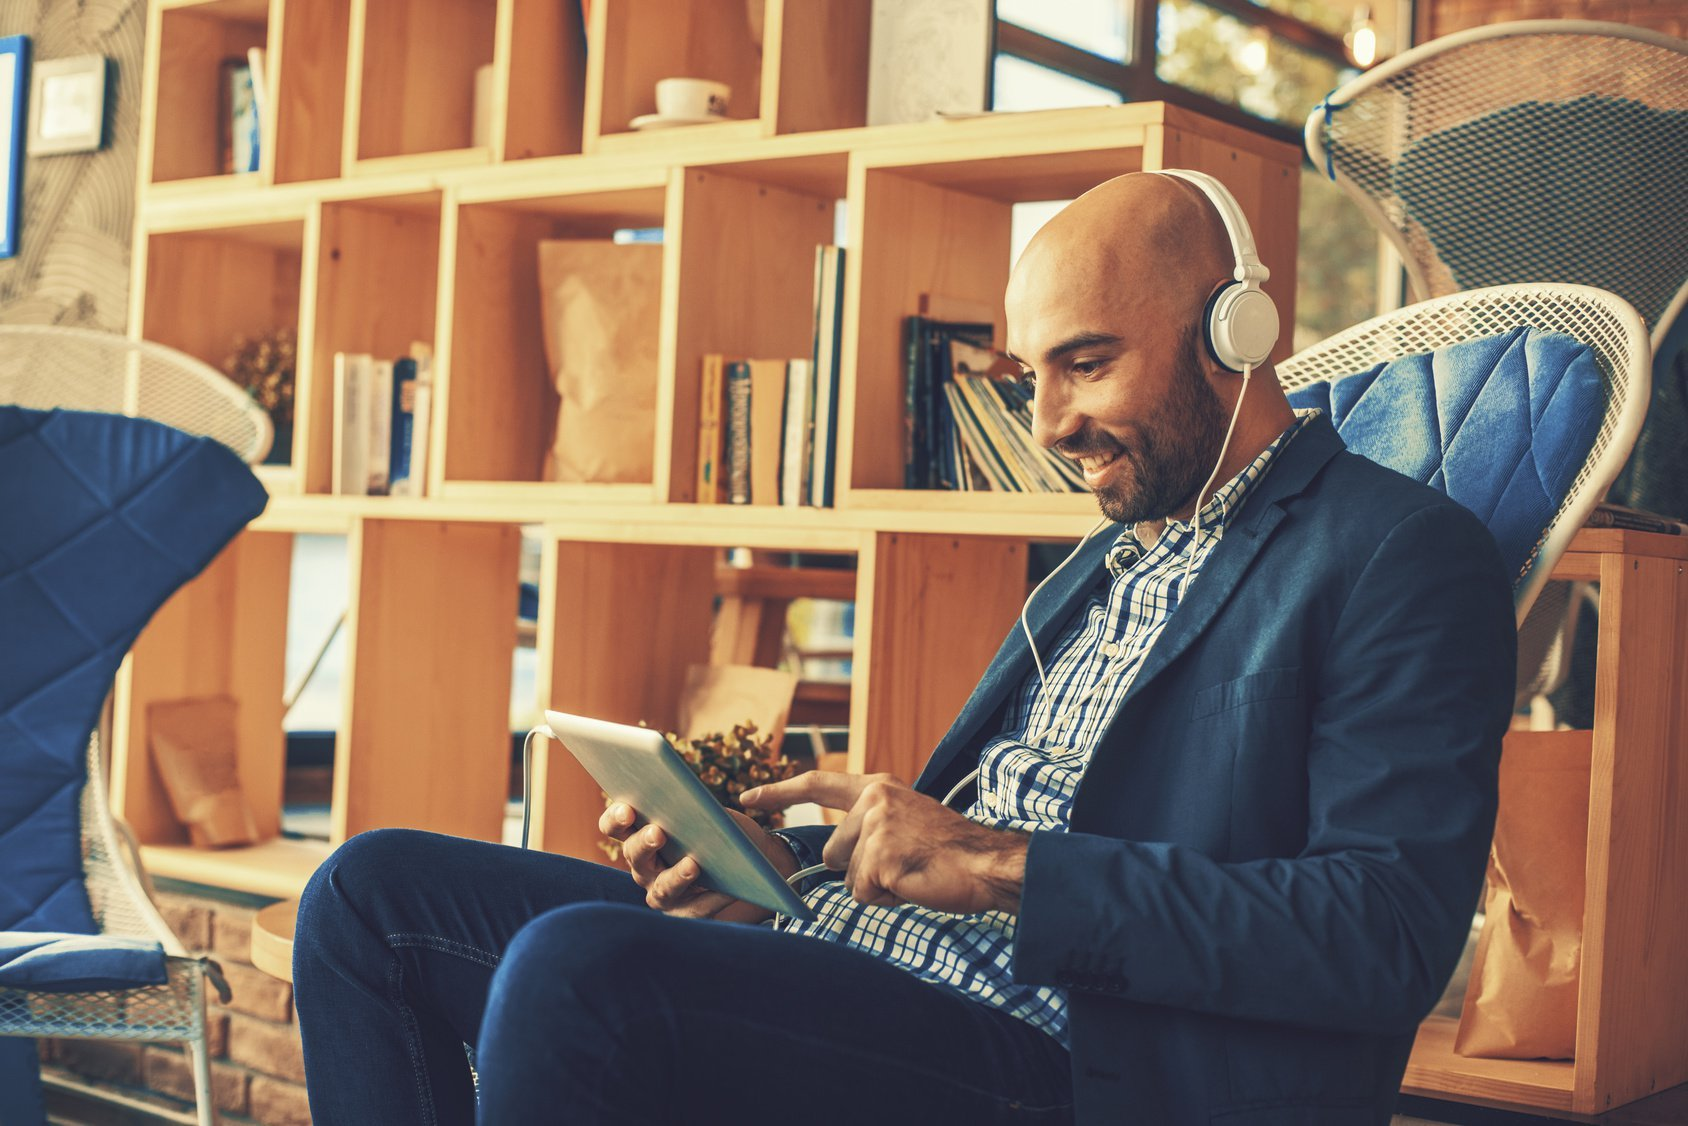 5 Essential Digital Marketing Podcasts That All Marketers and Business Owners Should Be Listening To